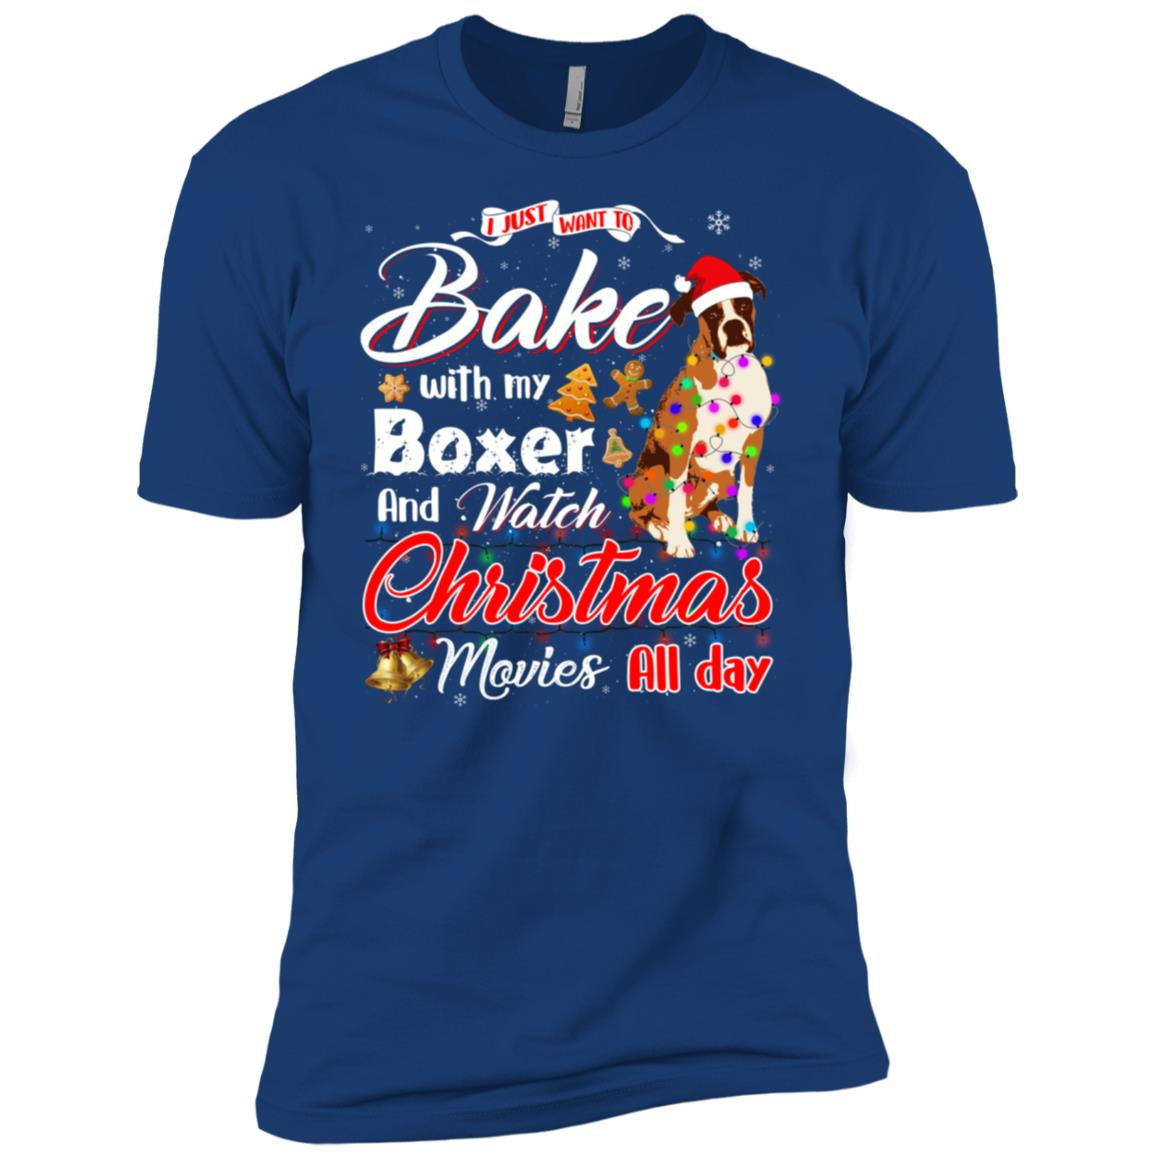 Bake Stuff with Boxer And Watch Christmas Movies Men Short Sleeve T-Shirt